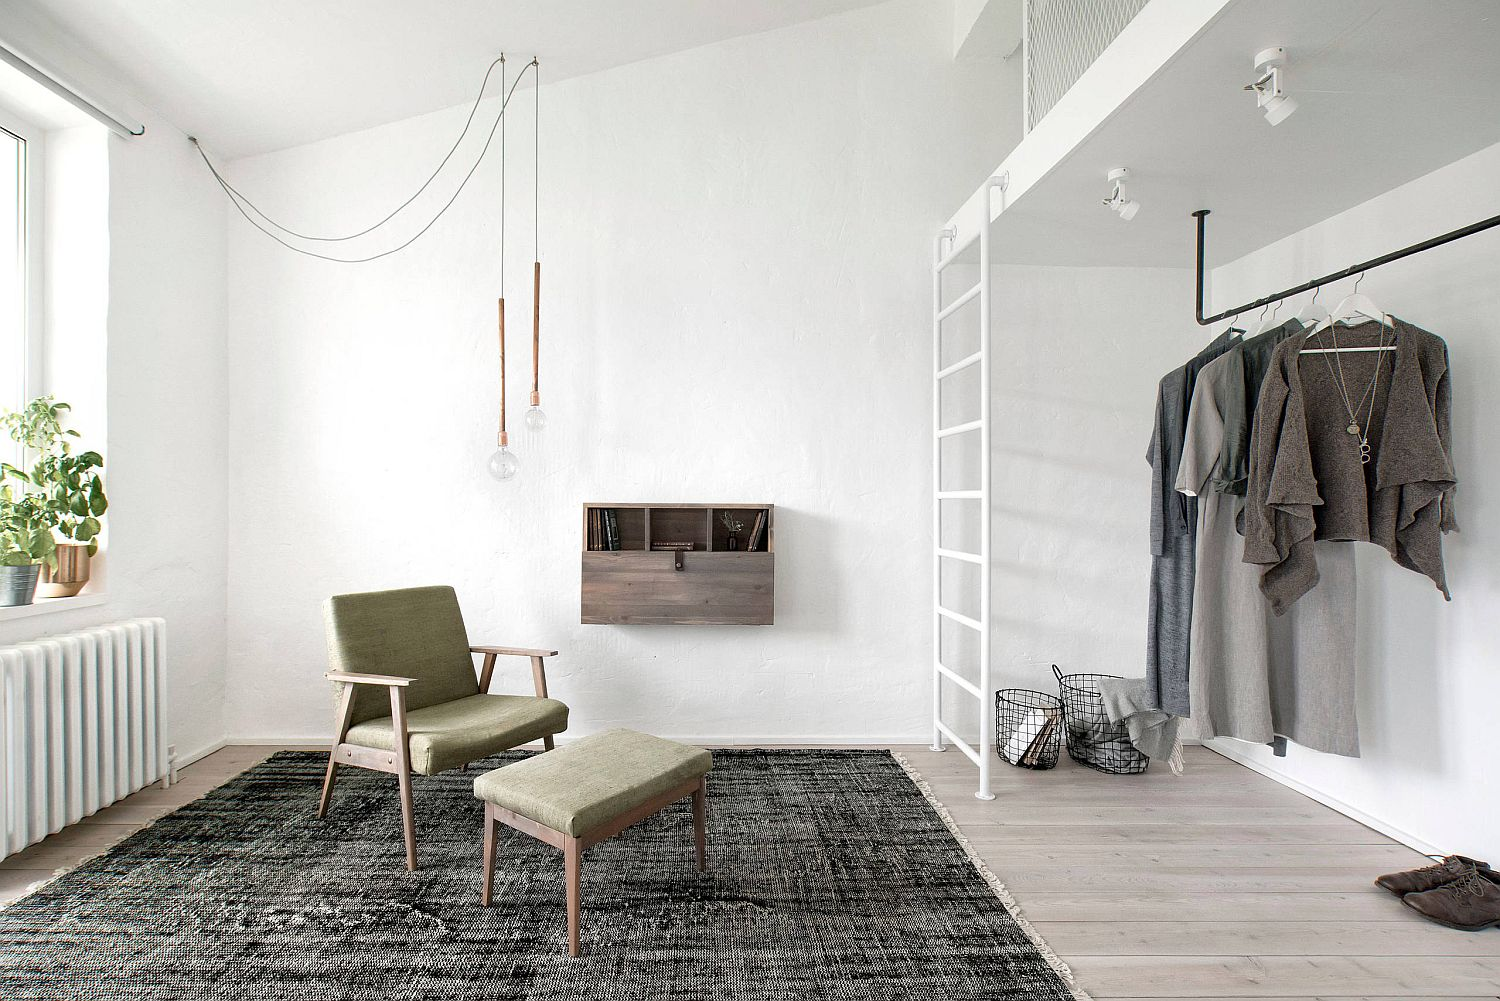 Loft-bed-with-space-underneath-used-as-closet-that-has-simple-rod-to-hang-clothes